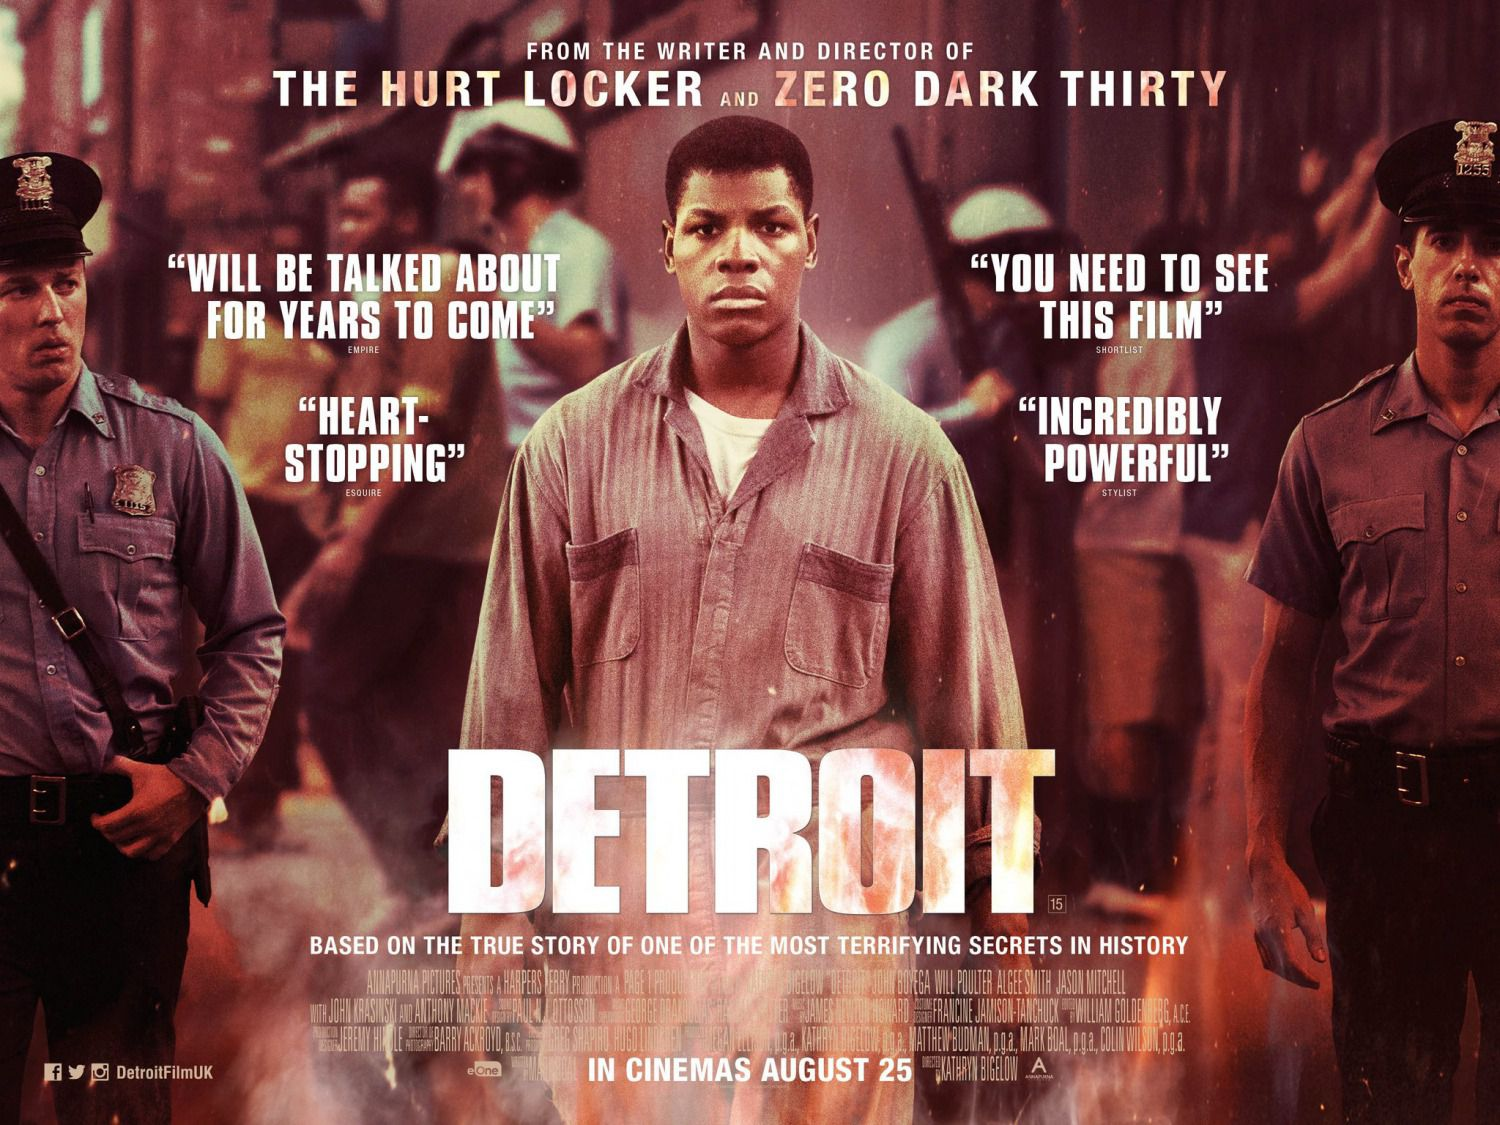 Detroit ... film based on the true story of one of the most terrifying secret in history - poster